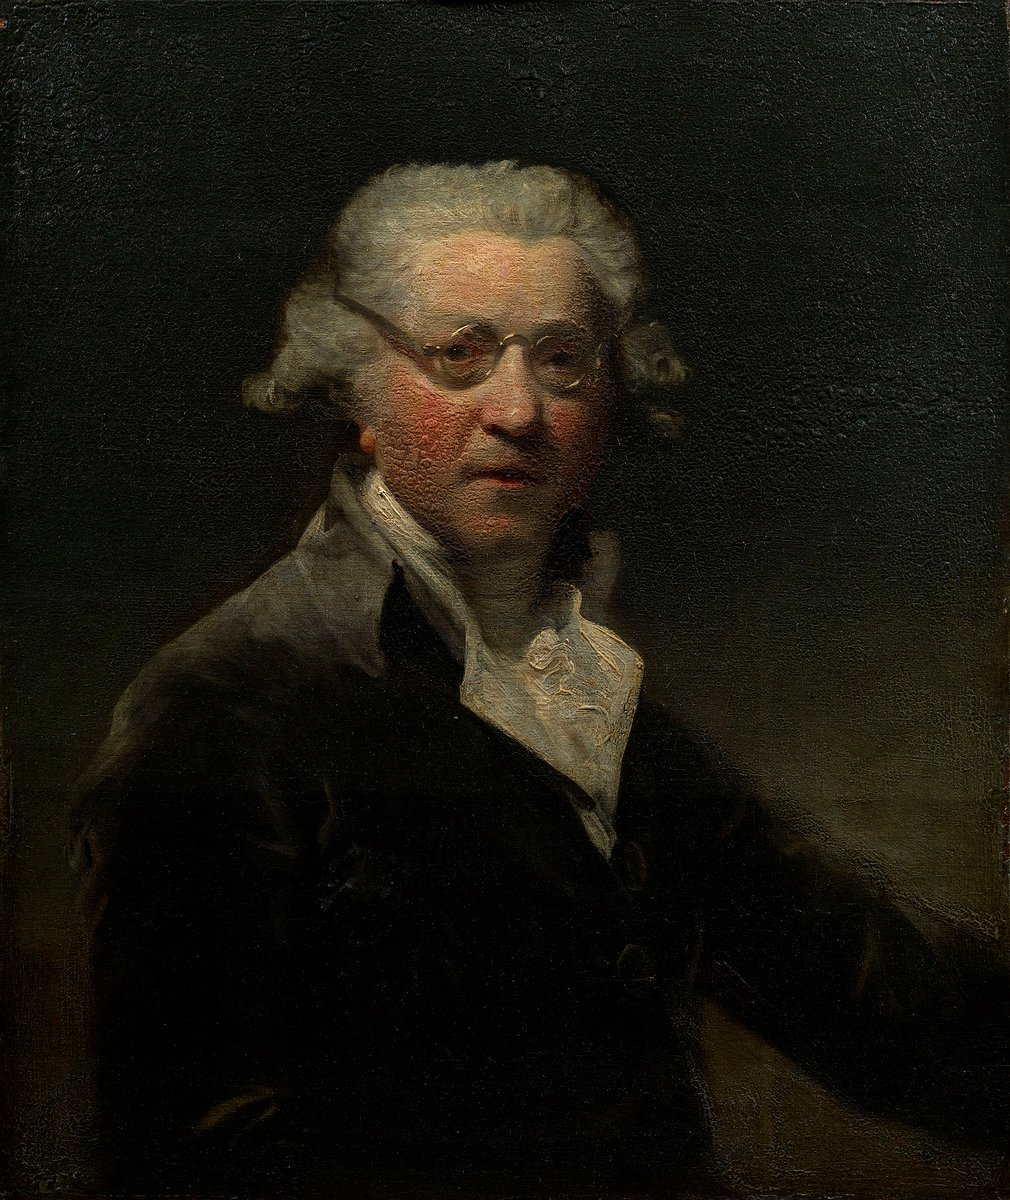 Of the no less than 27 self-portraits Sir Joshua Reynolds painted during his lifetime, this was his penultimate, produced c.1788 when he was about 65. It was a popular work and was frequently copied. This original version was presented to George IV, a gre